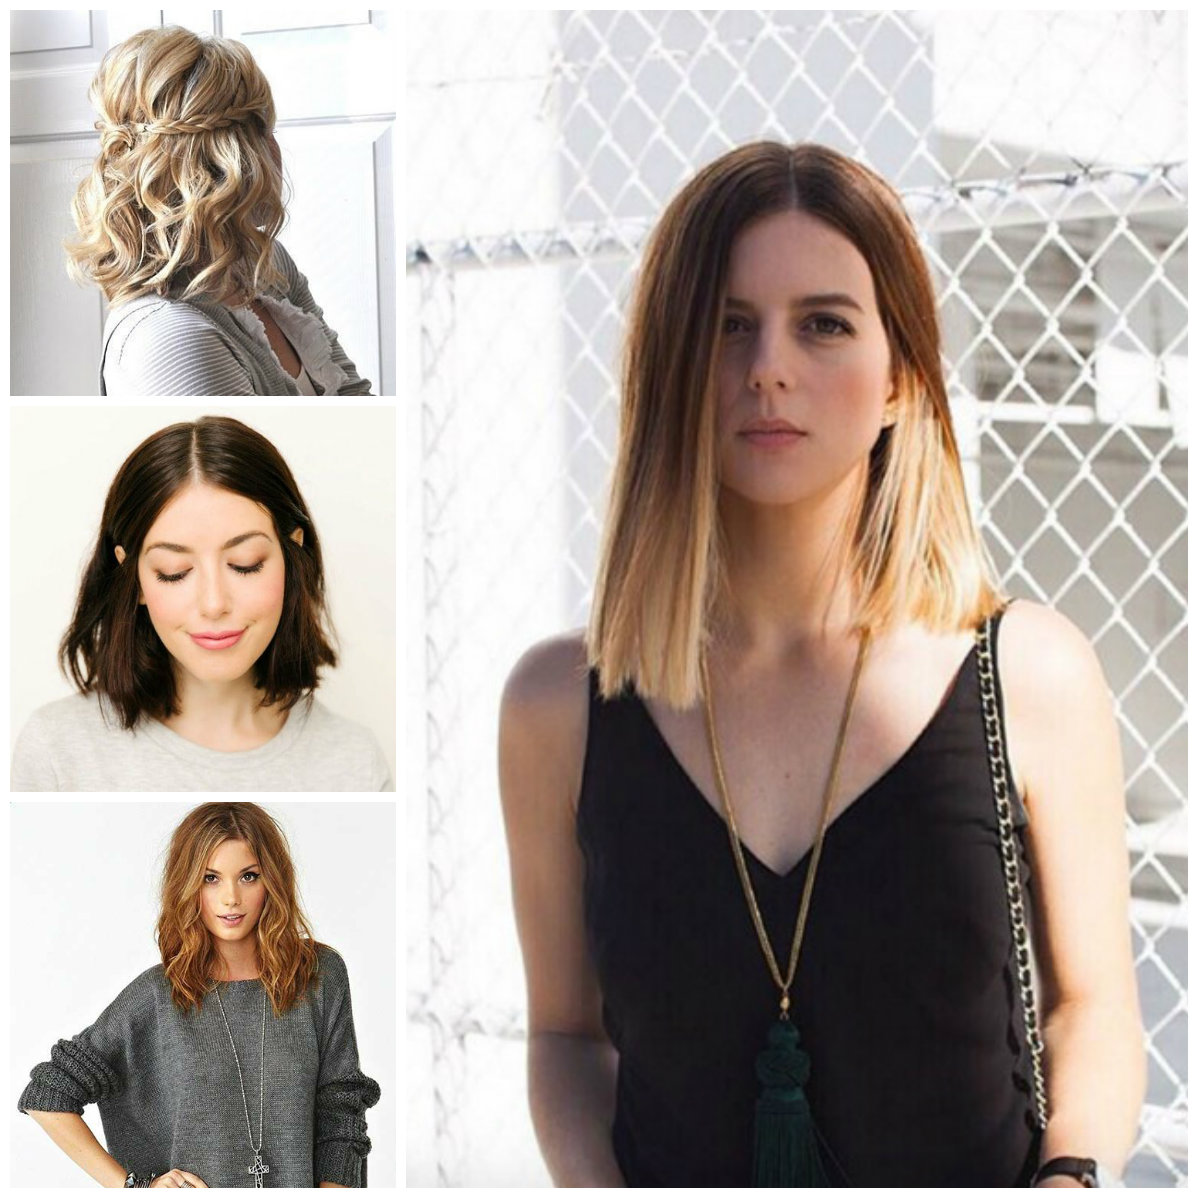 """5 mid-length hairstyles for 2020 """"width ="""" 500 """"height ="""" 500 """"data-jpibfi-post-excerpt ="""" """"data-jpibfi-post-url ="""" http://www.frisuren-2018.com/5-medium-long -frisuren-für-2020 / """"data-jpibfi-post-title ="""" 5 medium length hairstyles for 2020 """"data-jpibfi-src ="""" http://www.frisuren-2018.com/wp-content/uploads/2019/ 05/5-medium-long-hairstyles-for-2019.jpg """"/> If you're tired of loose locks, consider deciding on messy updos, if you're not sure how to style your medium-length haircut should, read the following <strong>5 medium length hairstyles for 2020</strong> and let yourself be inspired. I am sure you will find something here that is close to your nature.<span id="""